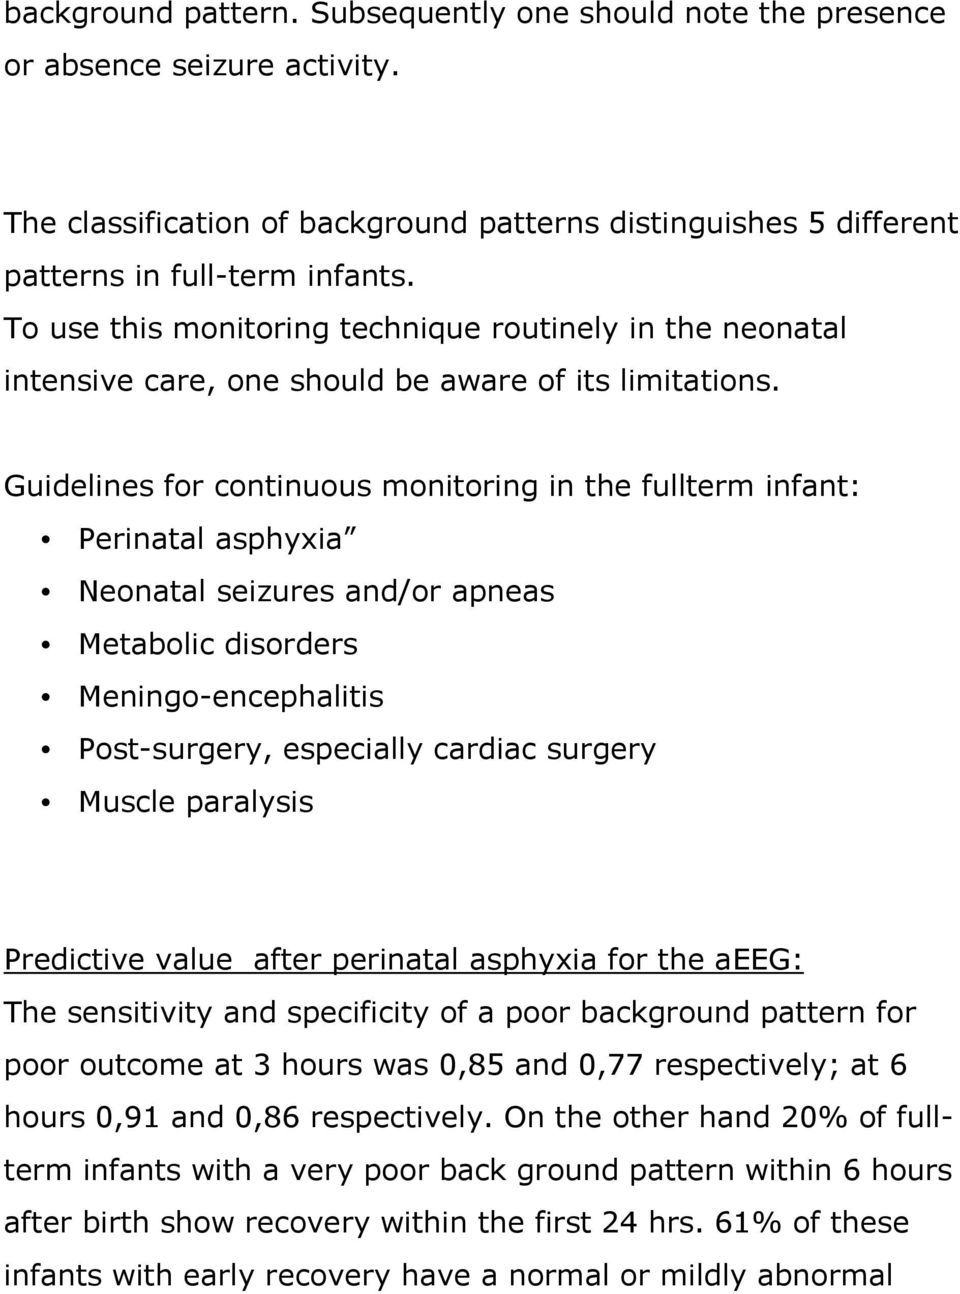 Guidelines for continuous monitoring in the fullterm infant: Perinatal asphyxia Neonatal seizures and/or apneas Metabolic disorders Meningo-encephalitis Post-surgery, especially cardiac surgery